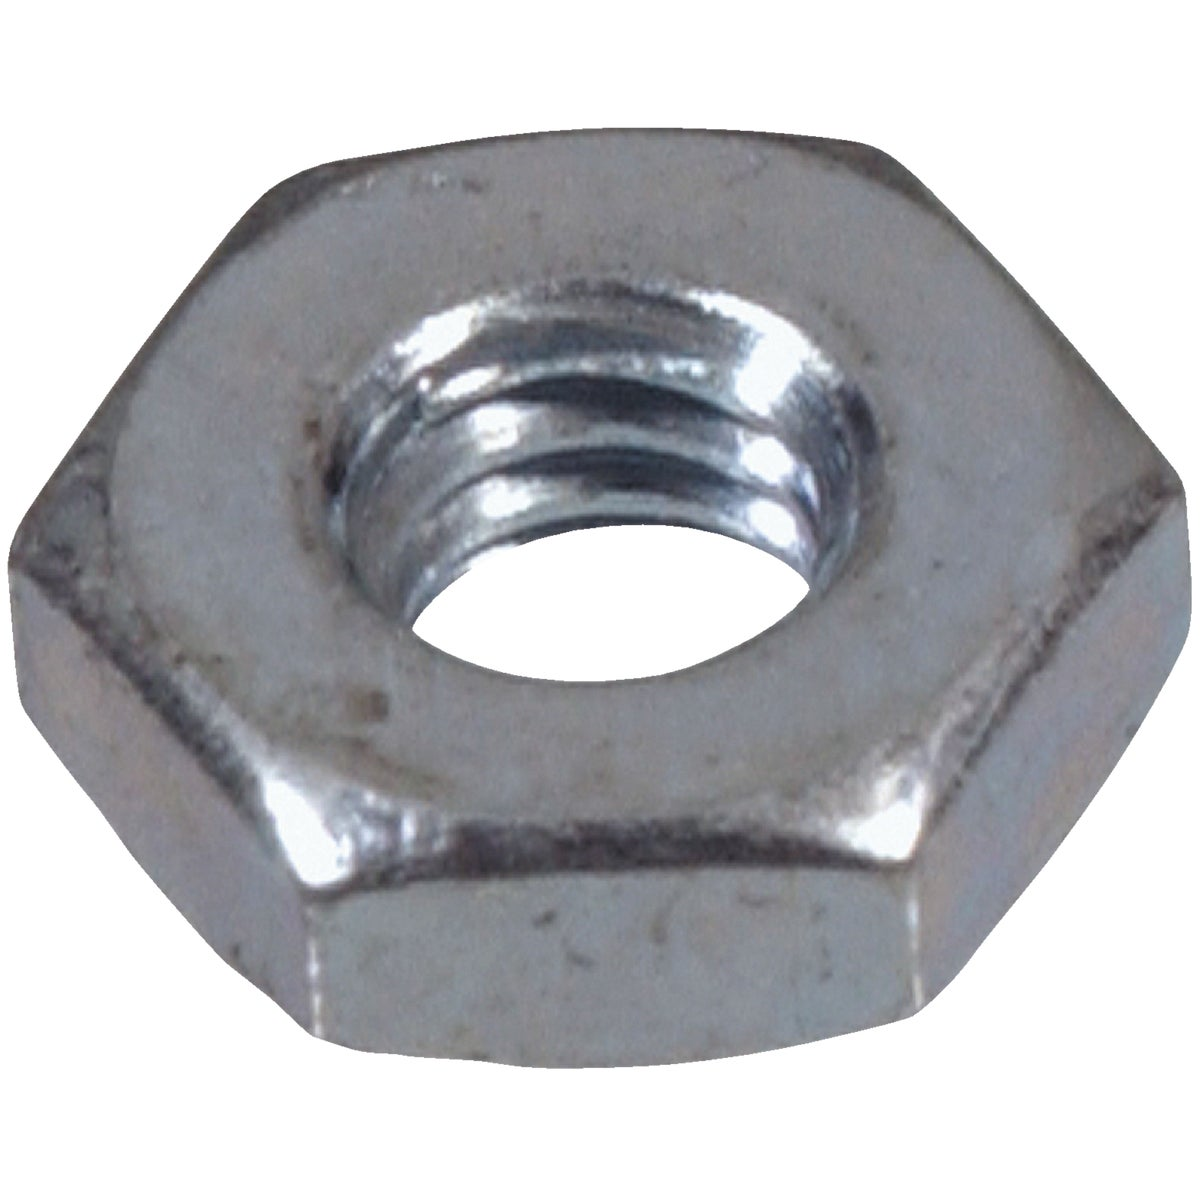 10-24 HEX MACH SCREW NUT - 140021 by Hillman Fastener